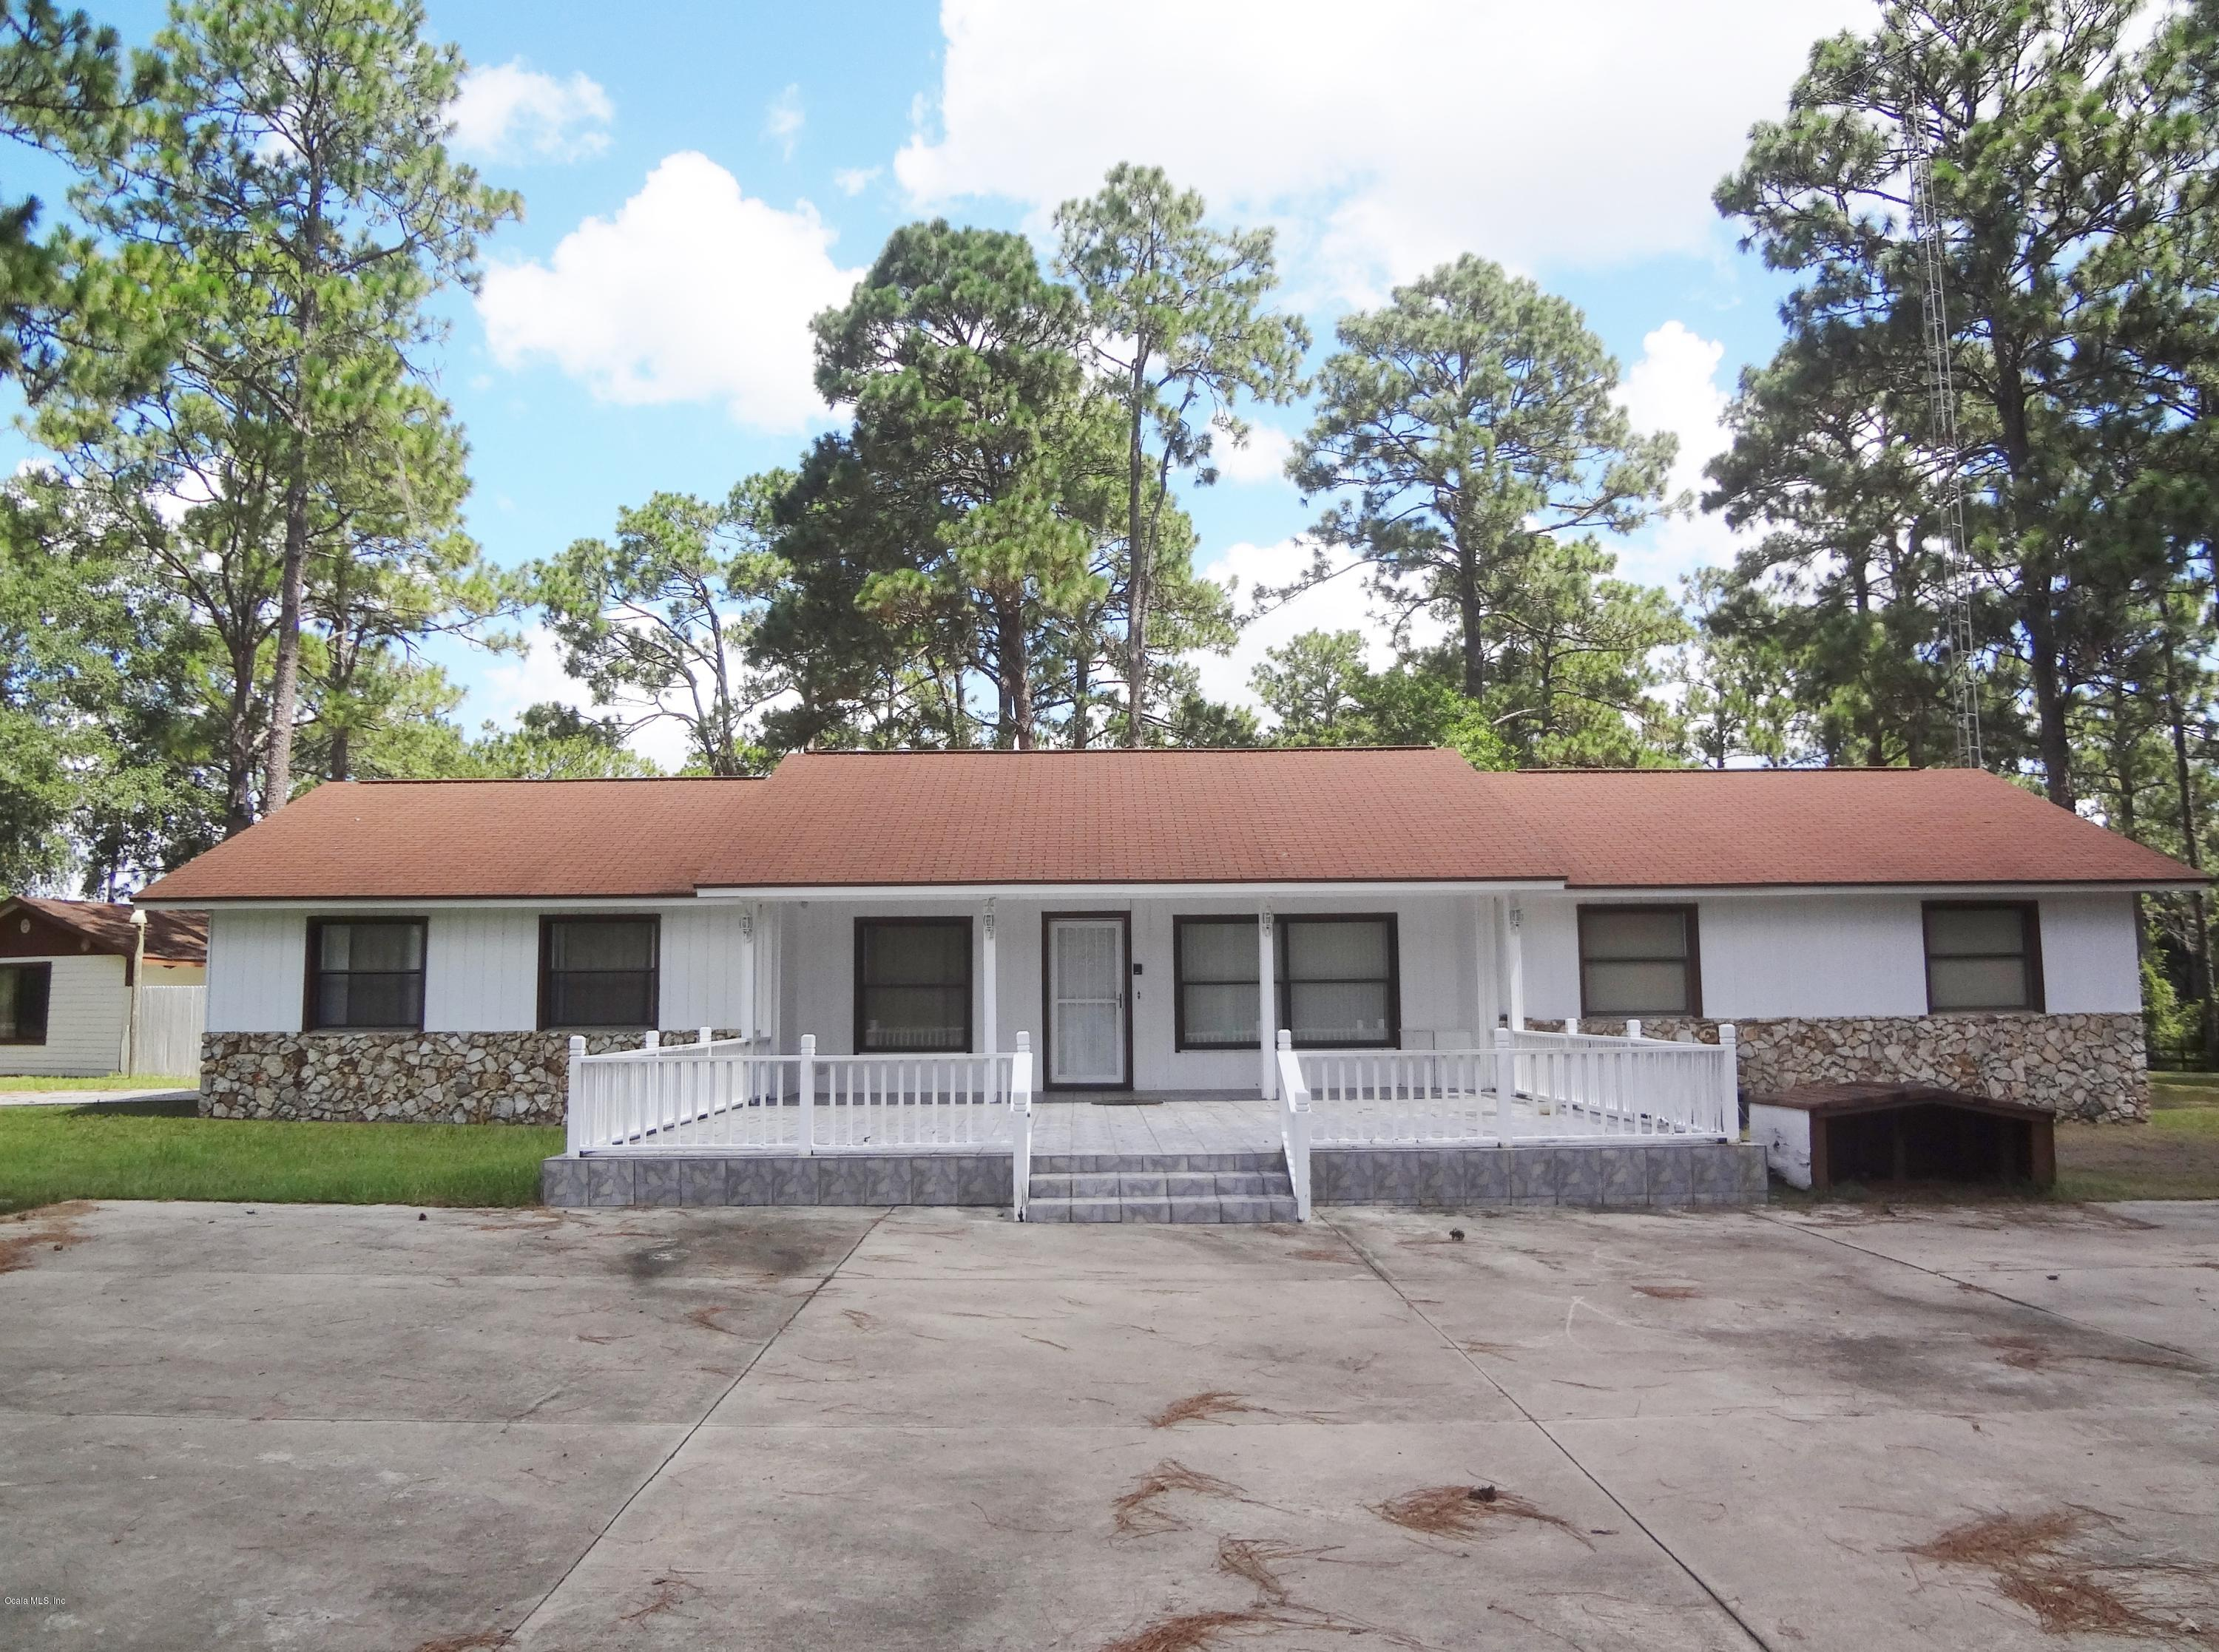 7675 NW 14TH STREET, OCALA, FL 34482